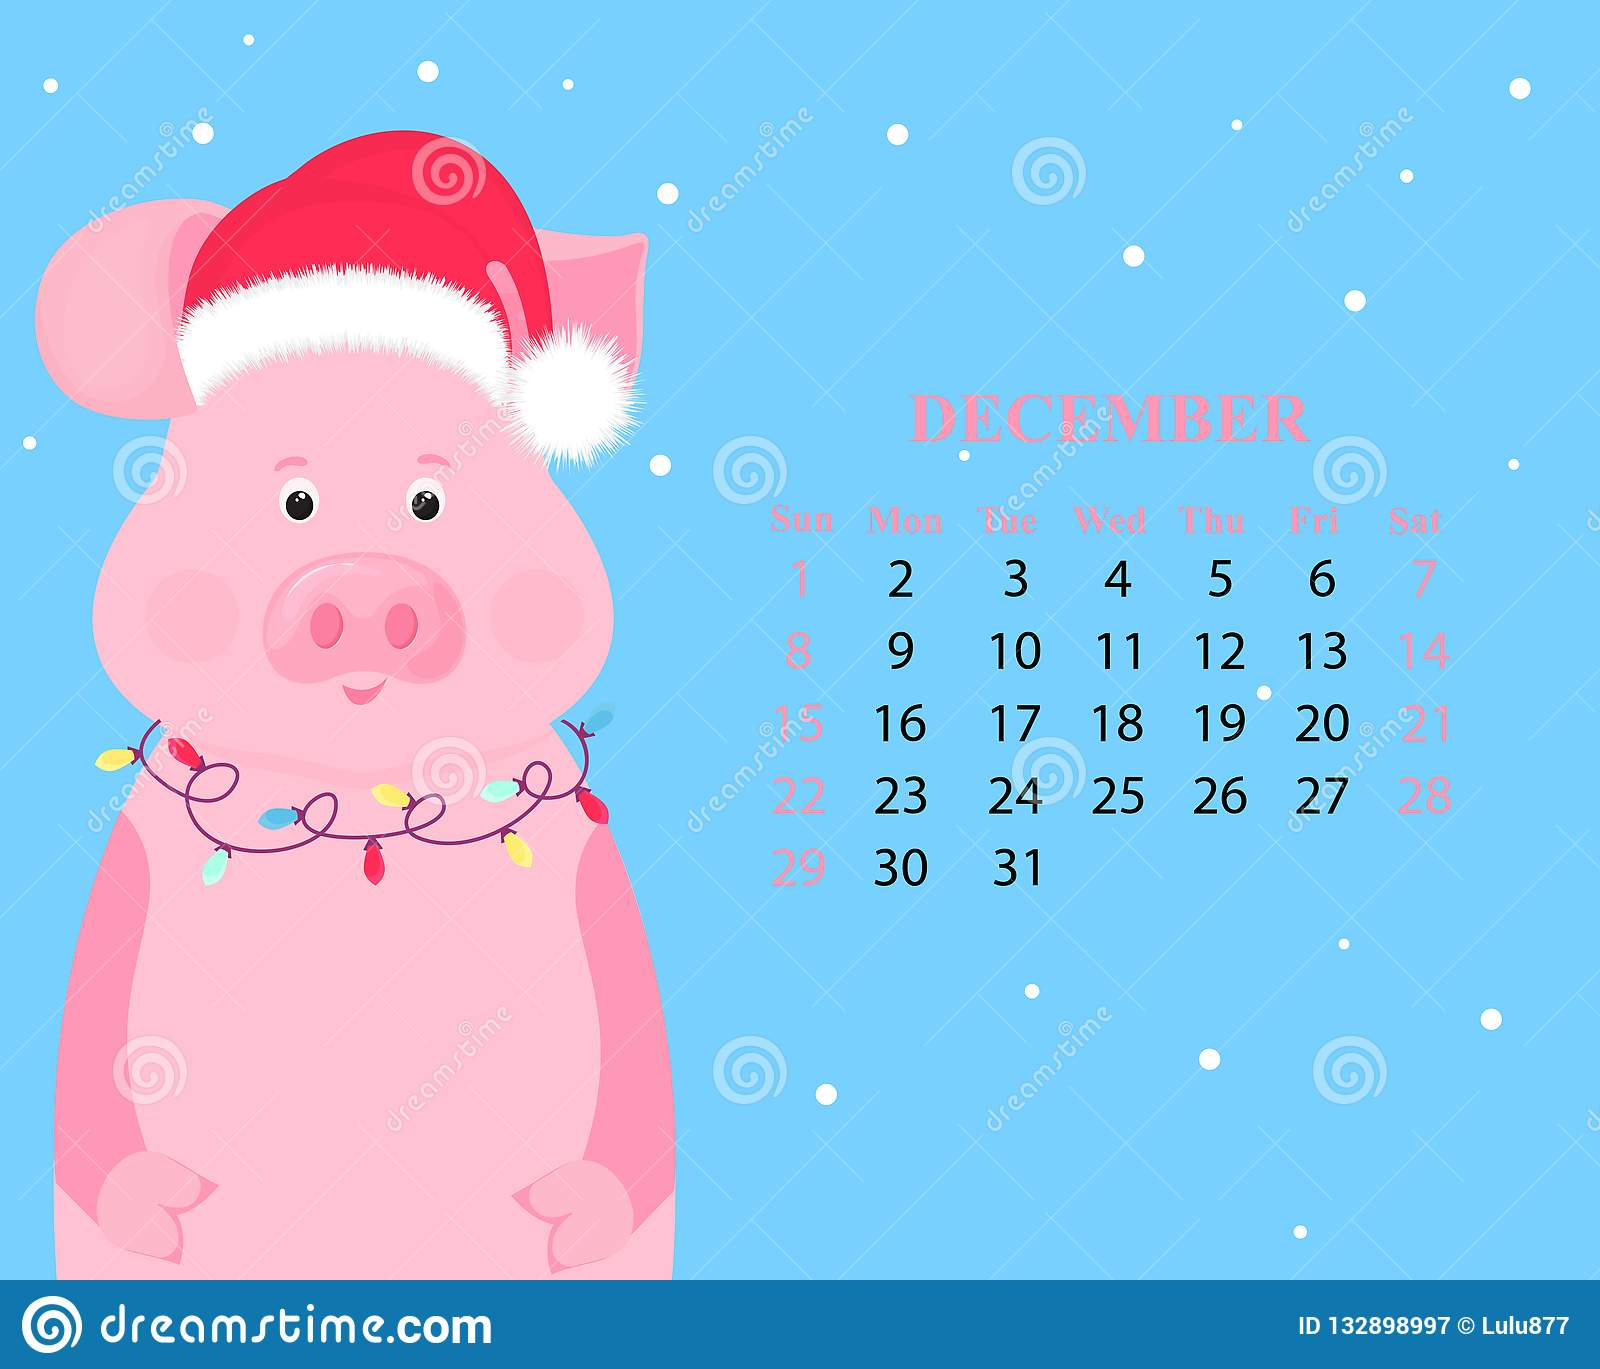 December Calendar 2019 Santa Monthly Calendar For December 2019. Cute Pig In A Hat Of Santa